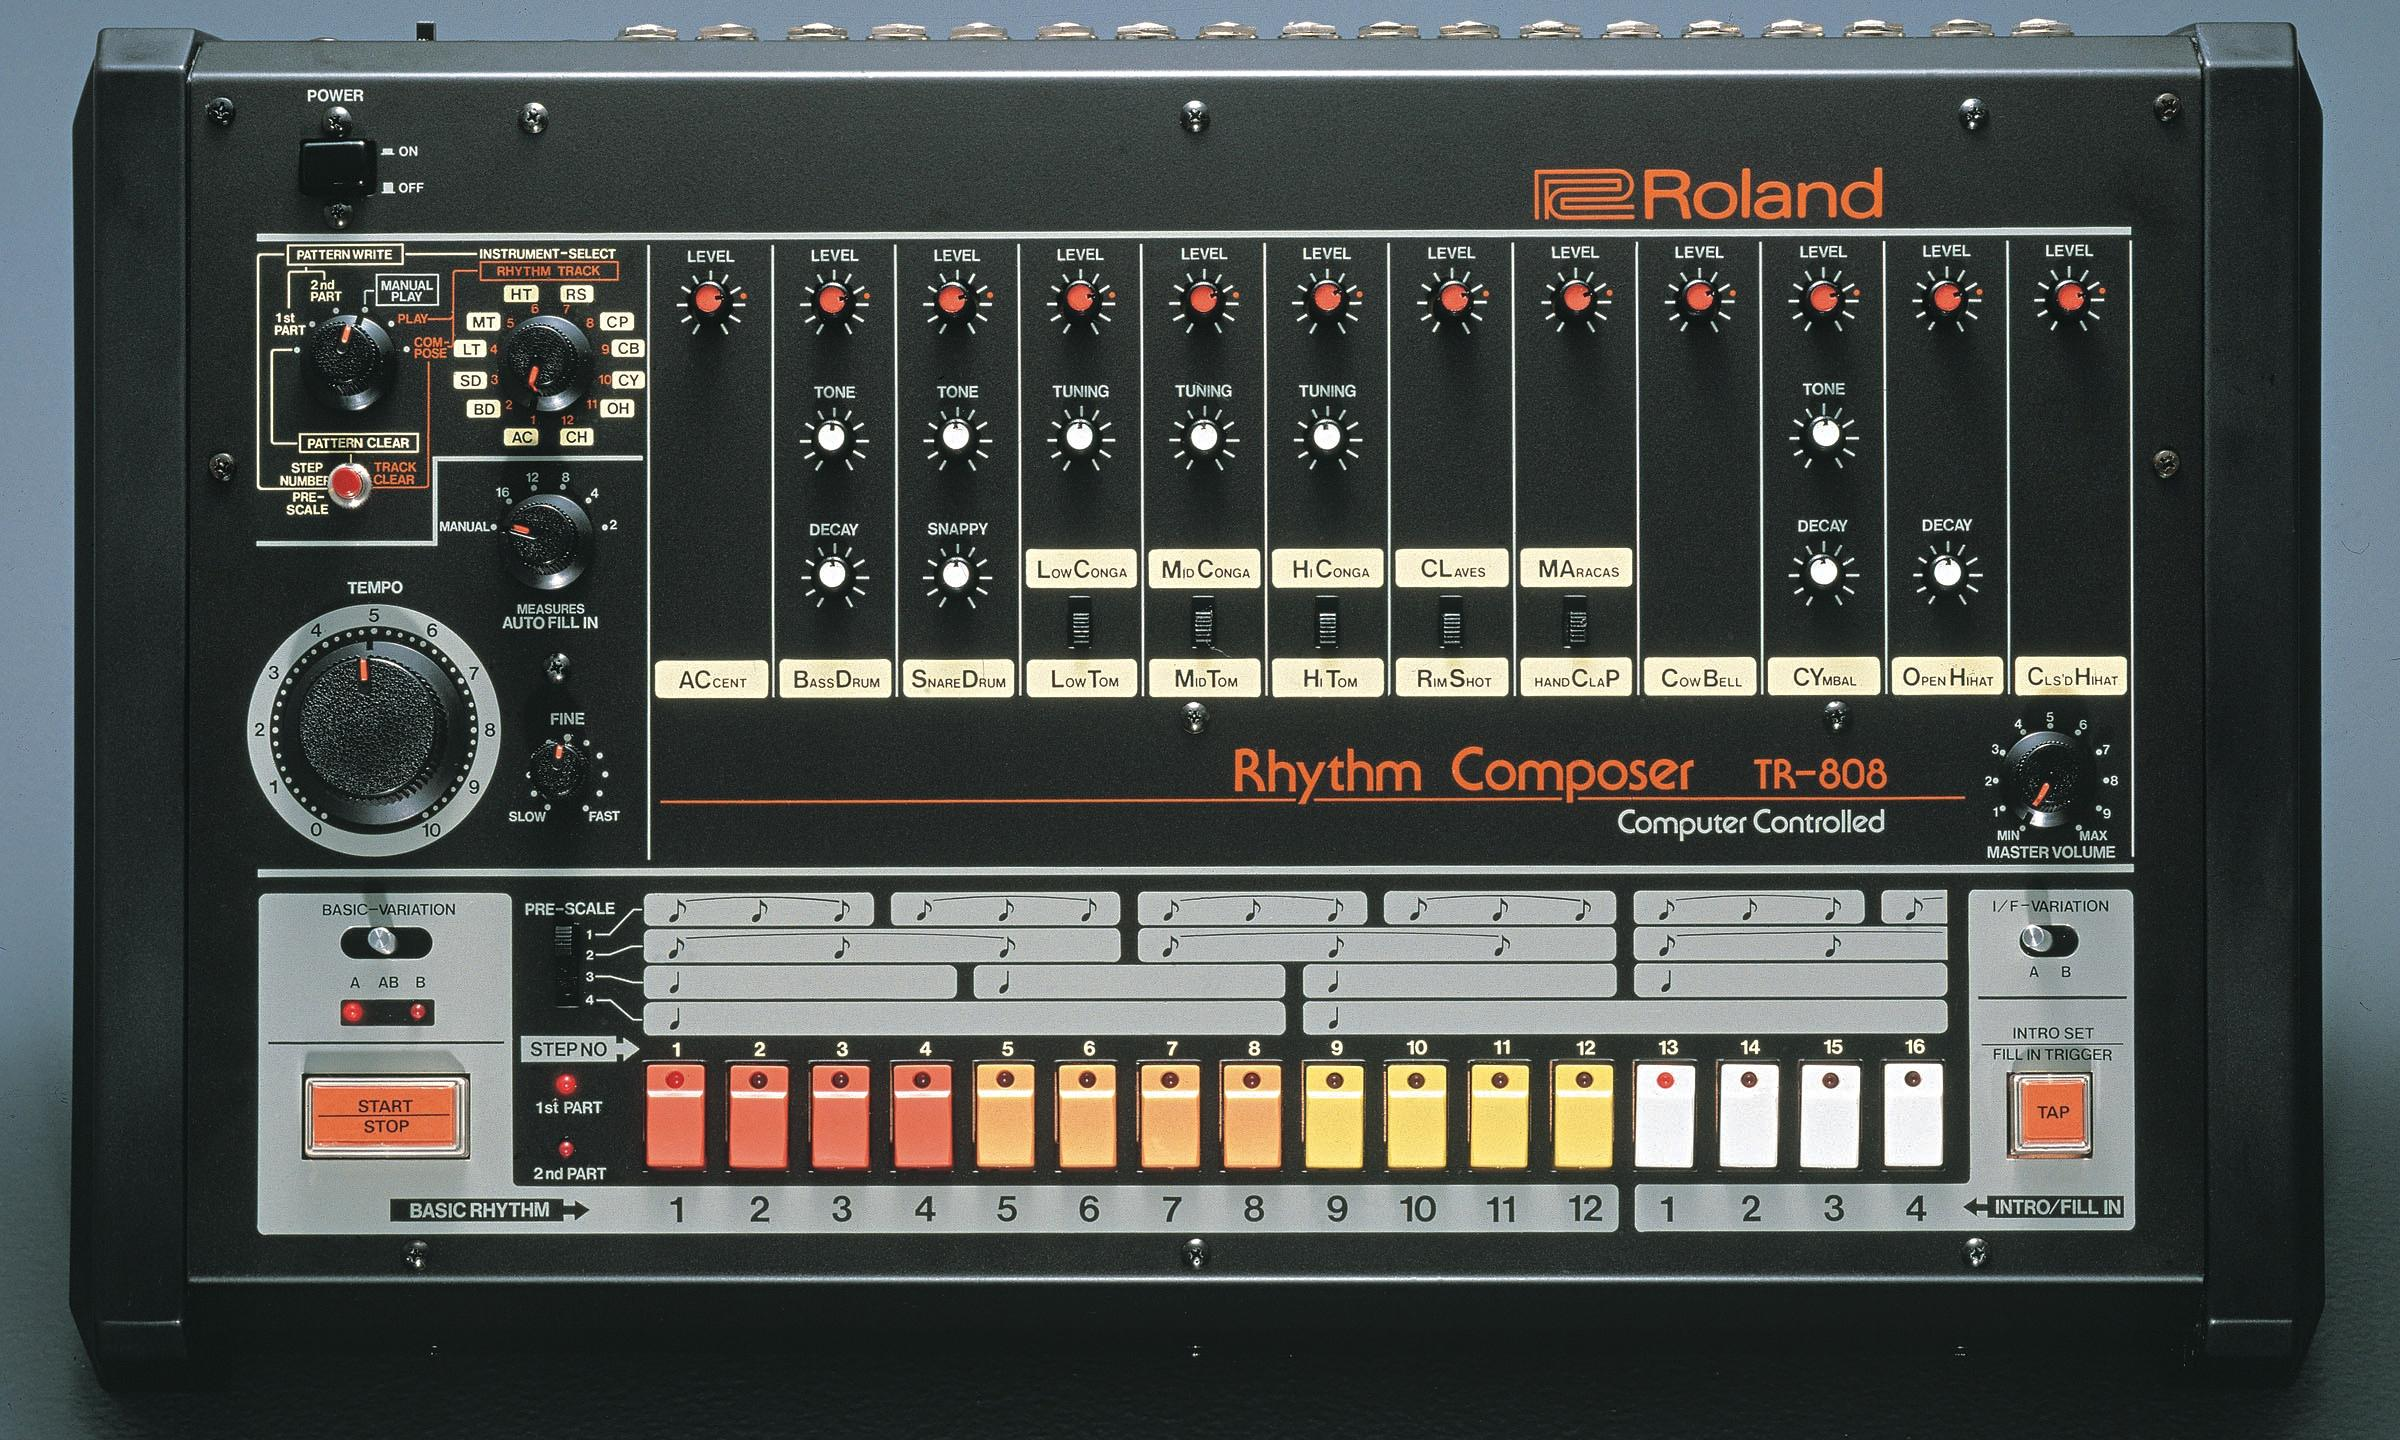 Drum Machine 808